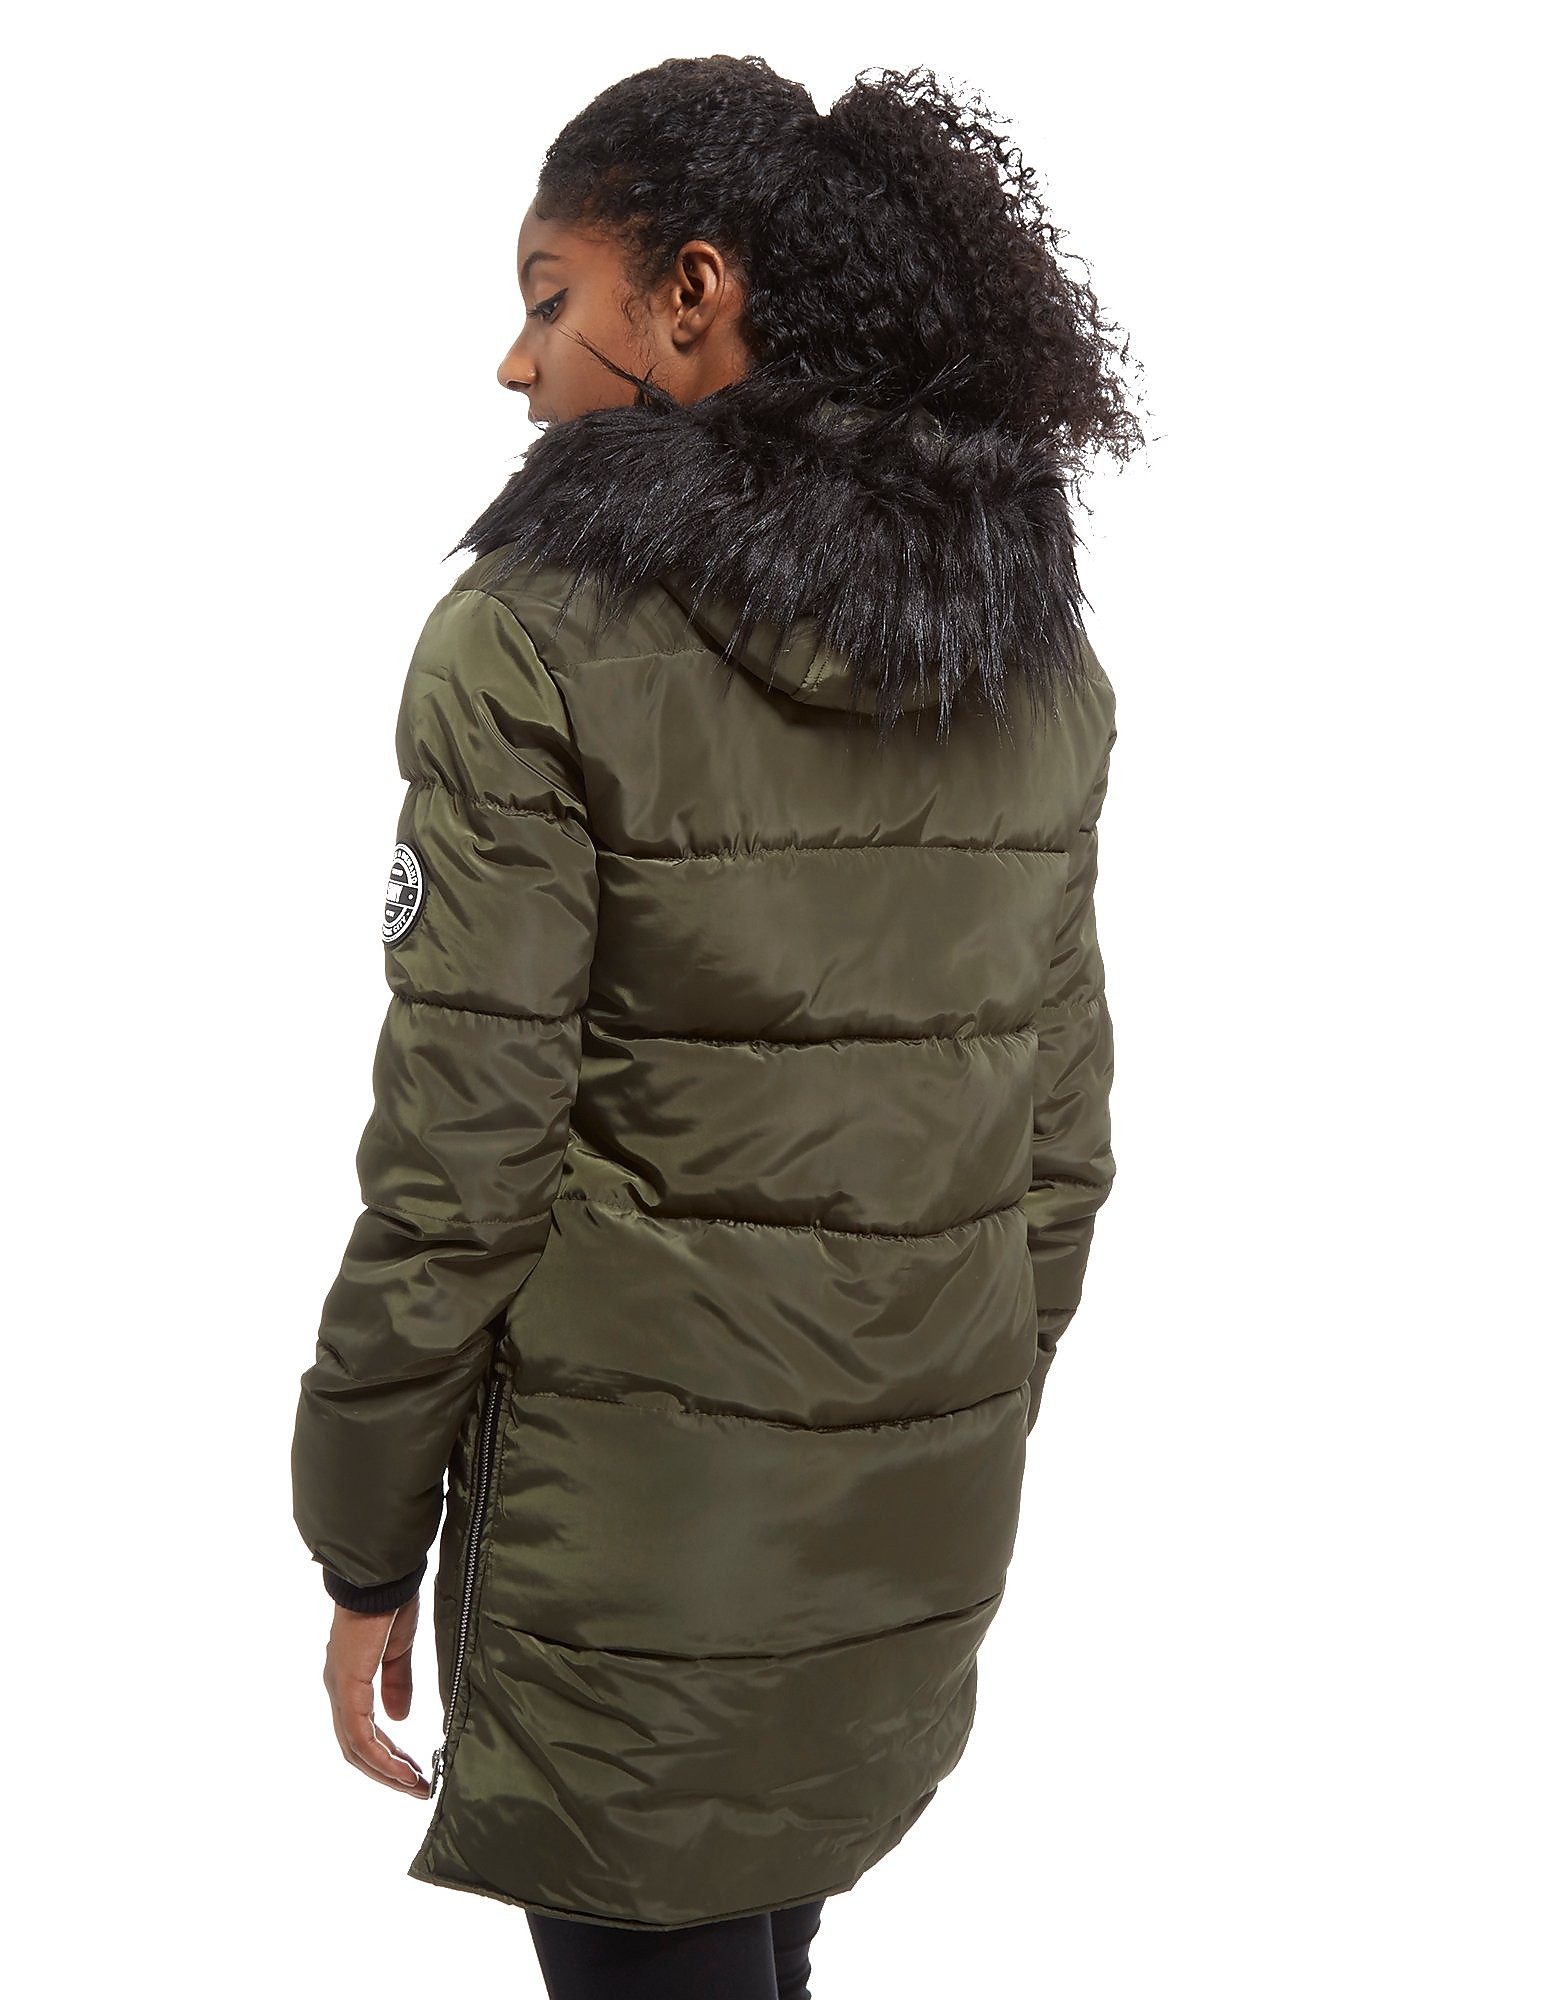 Supply & Demand Longline Parka Jacket